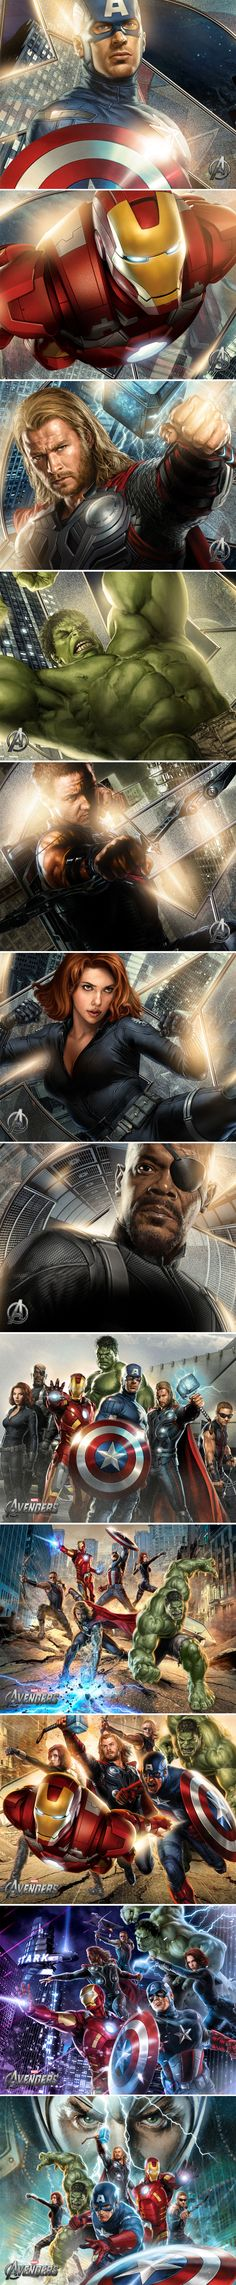 Movie posters (Still wish Black Widow was facing the action, rather than looking a bit lost!!)